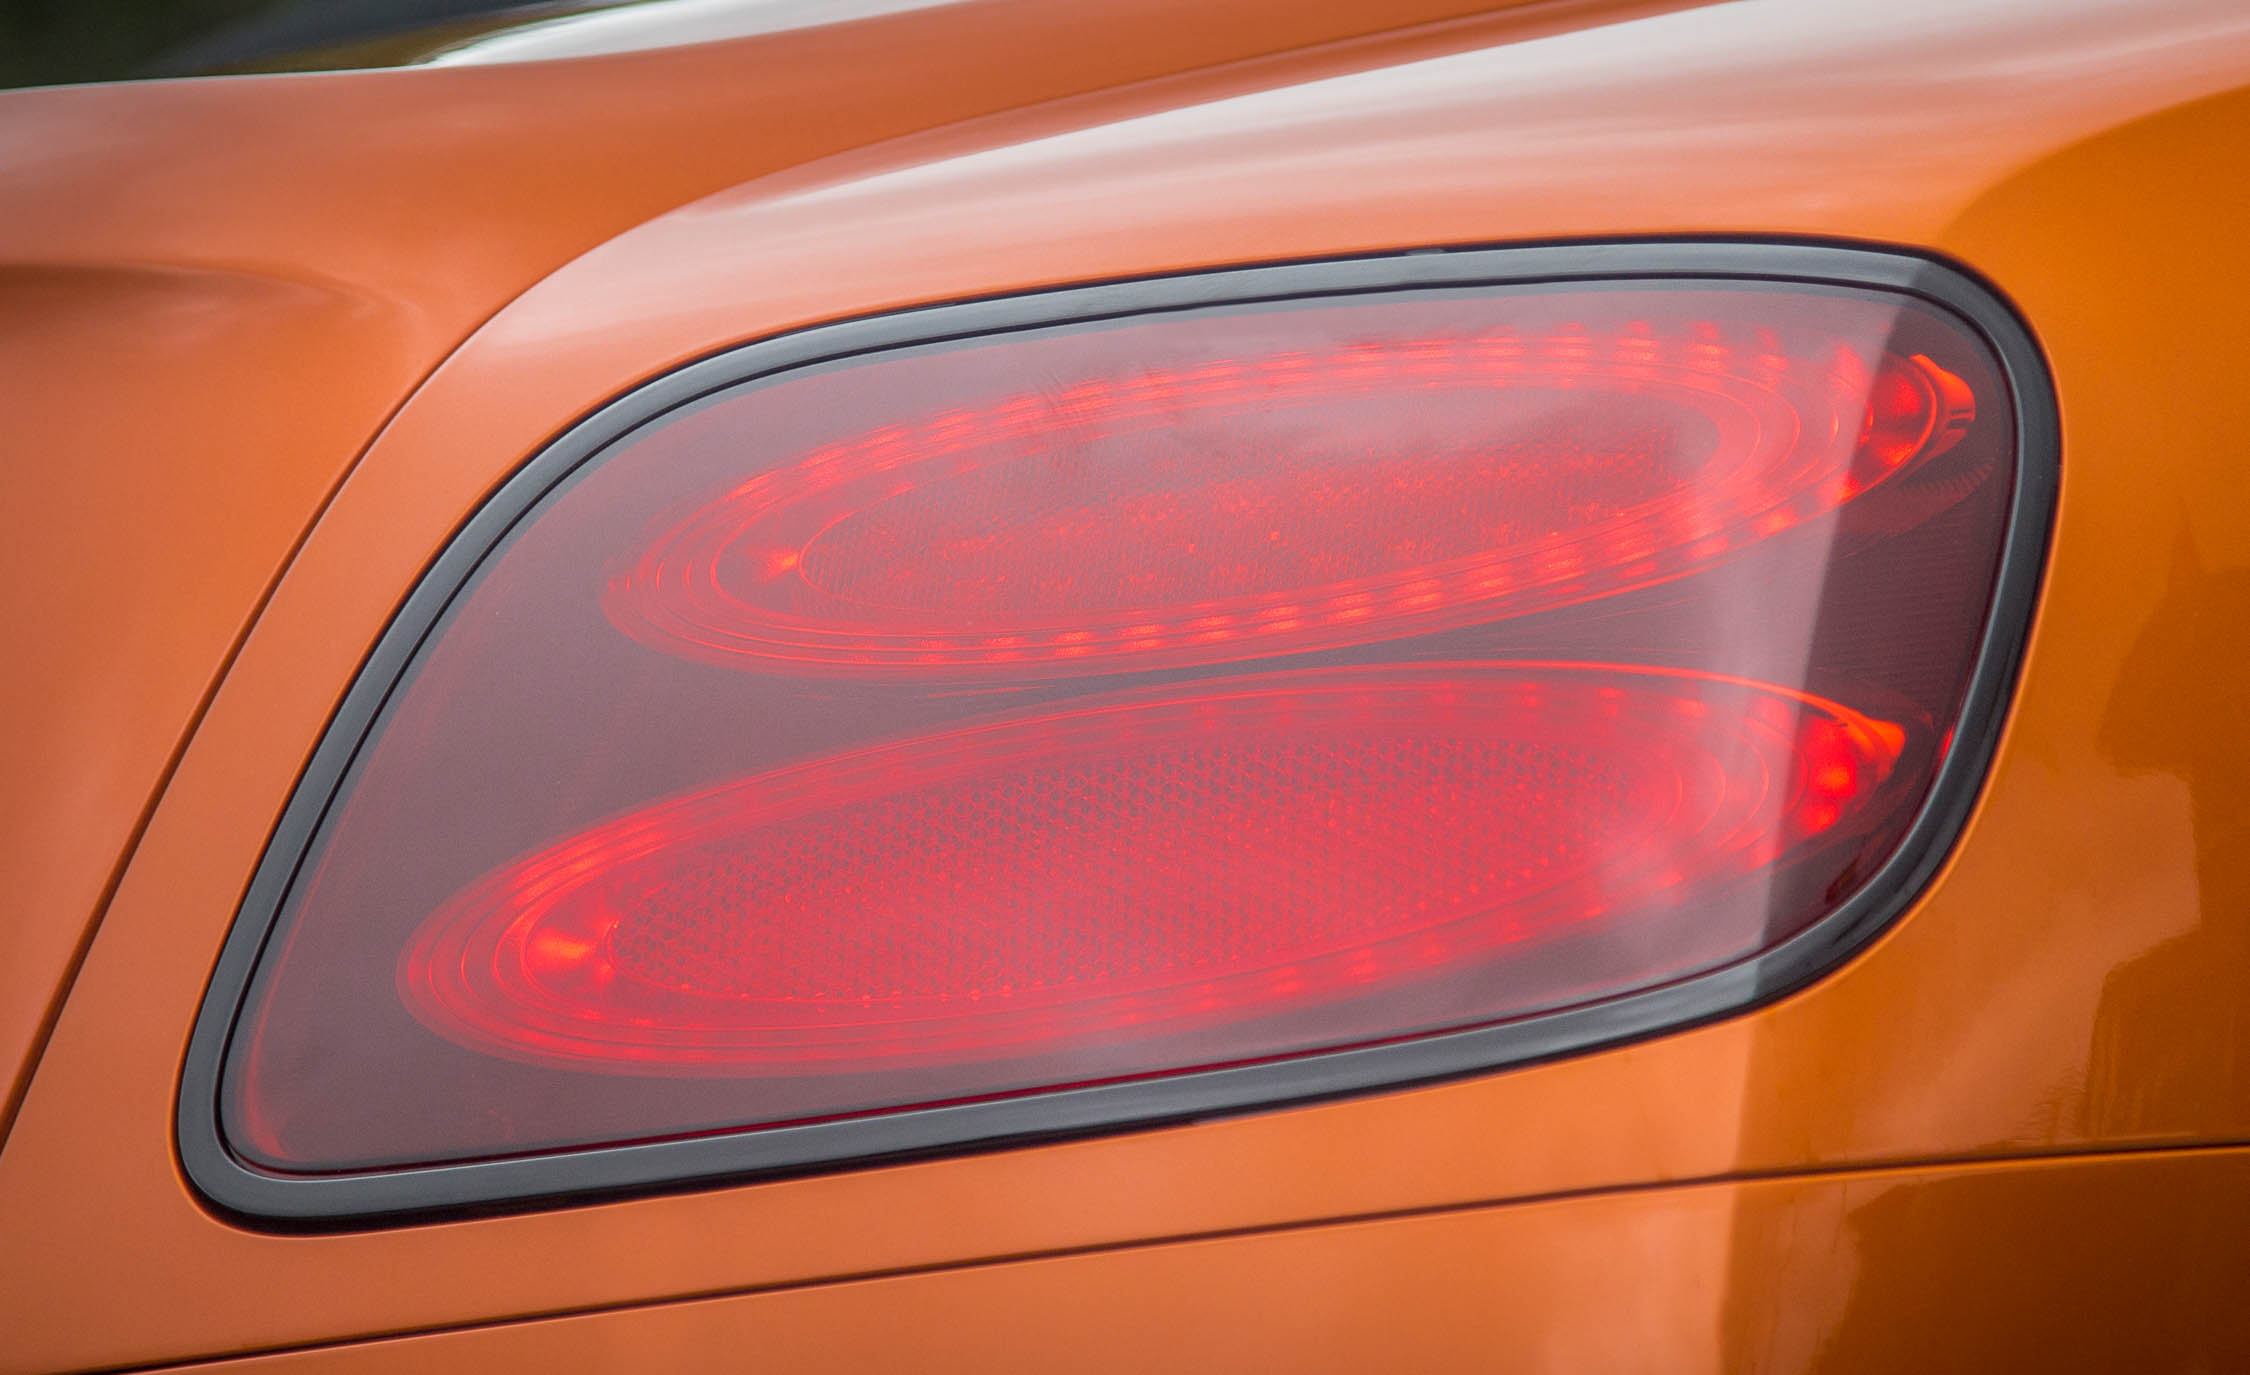 2018 Bentley Continental Supersports Convertible Exterior View Taillight (View 64 of 66)